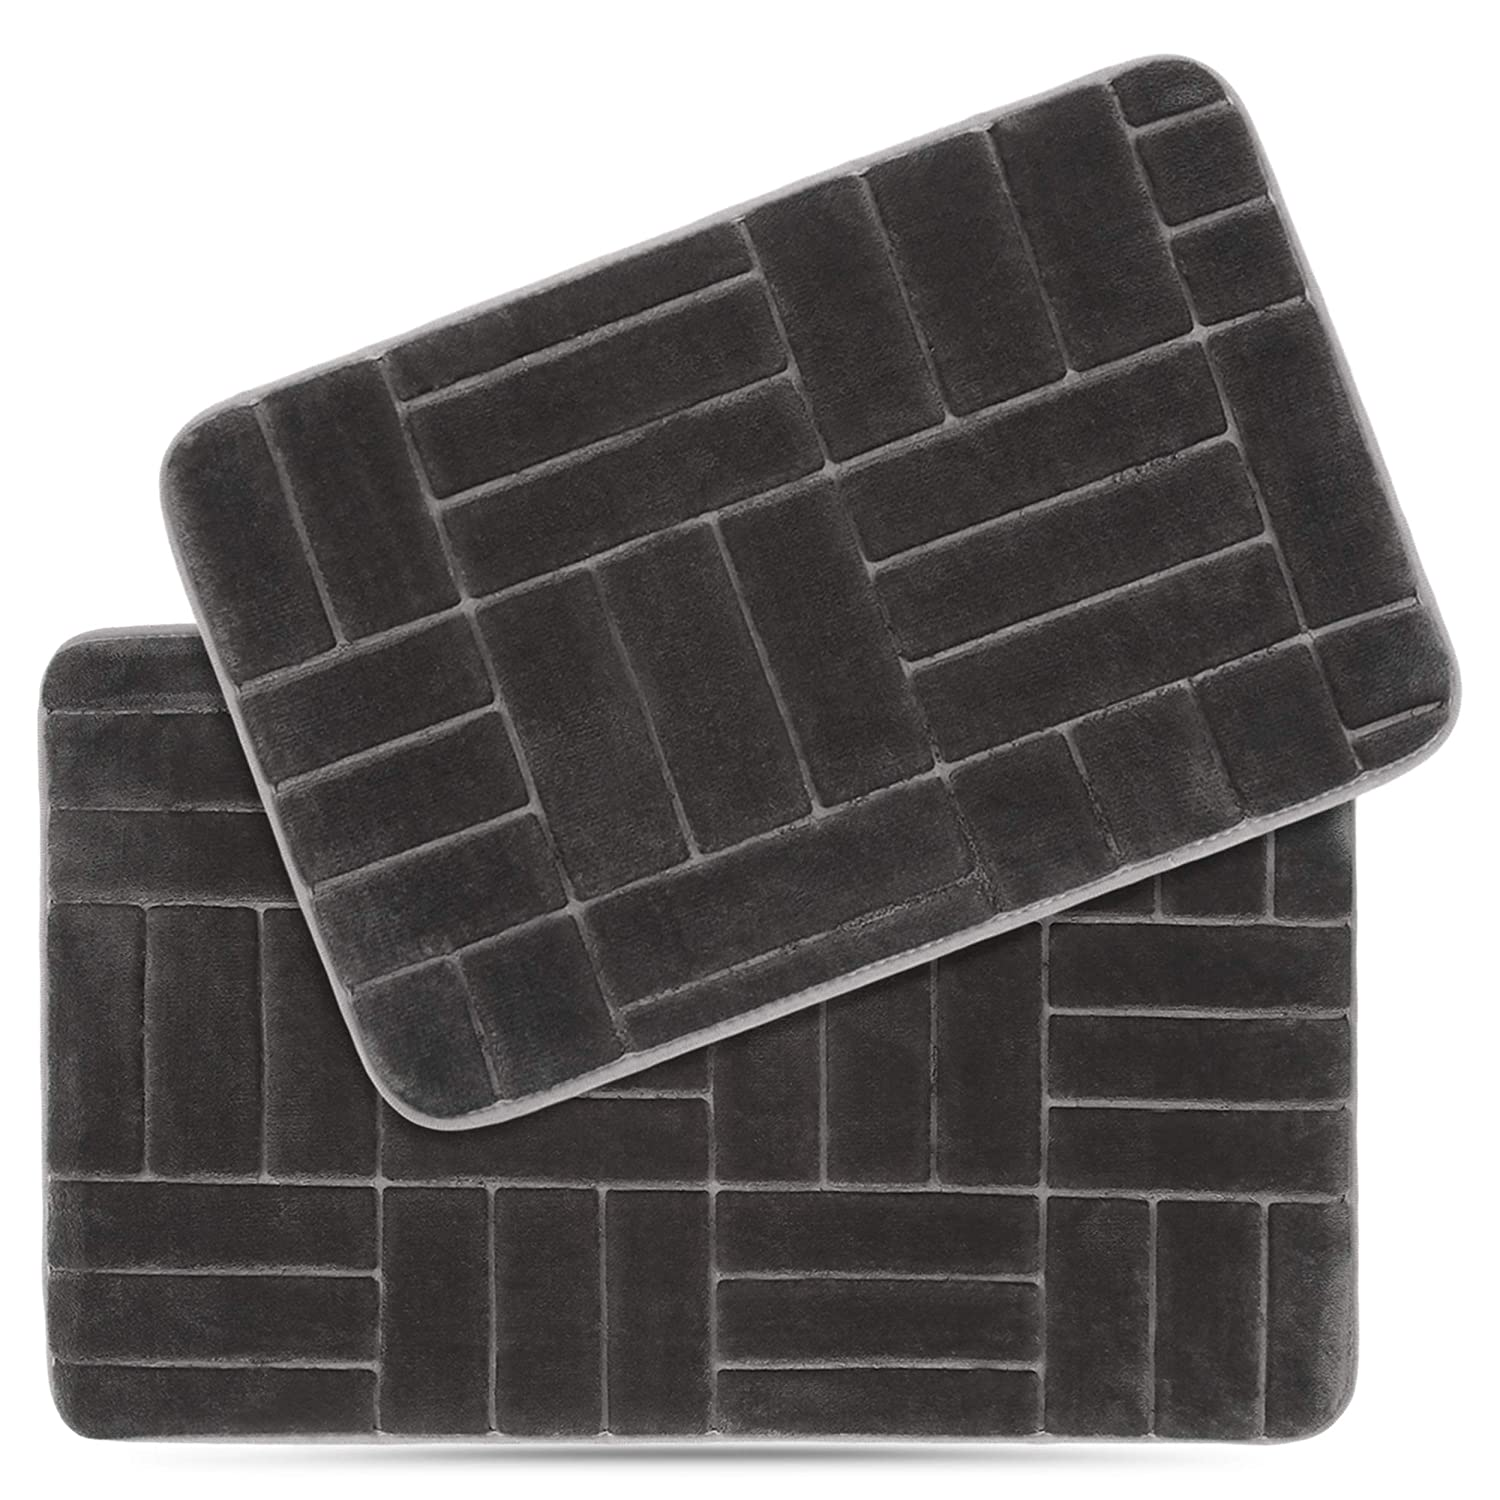 Effiliv 2 Piece Bathroom Rugs Set - Memory Foam Anti Slip Shower Bath Mats Rug Extra Soft, Black/Line